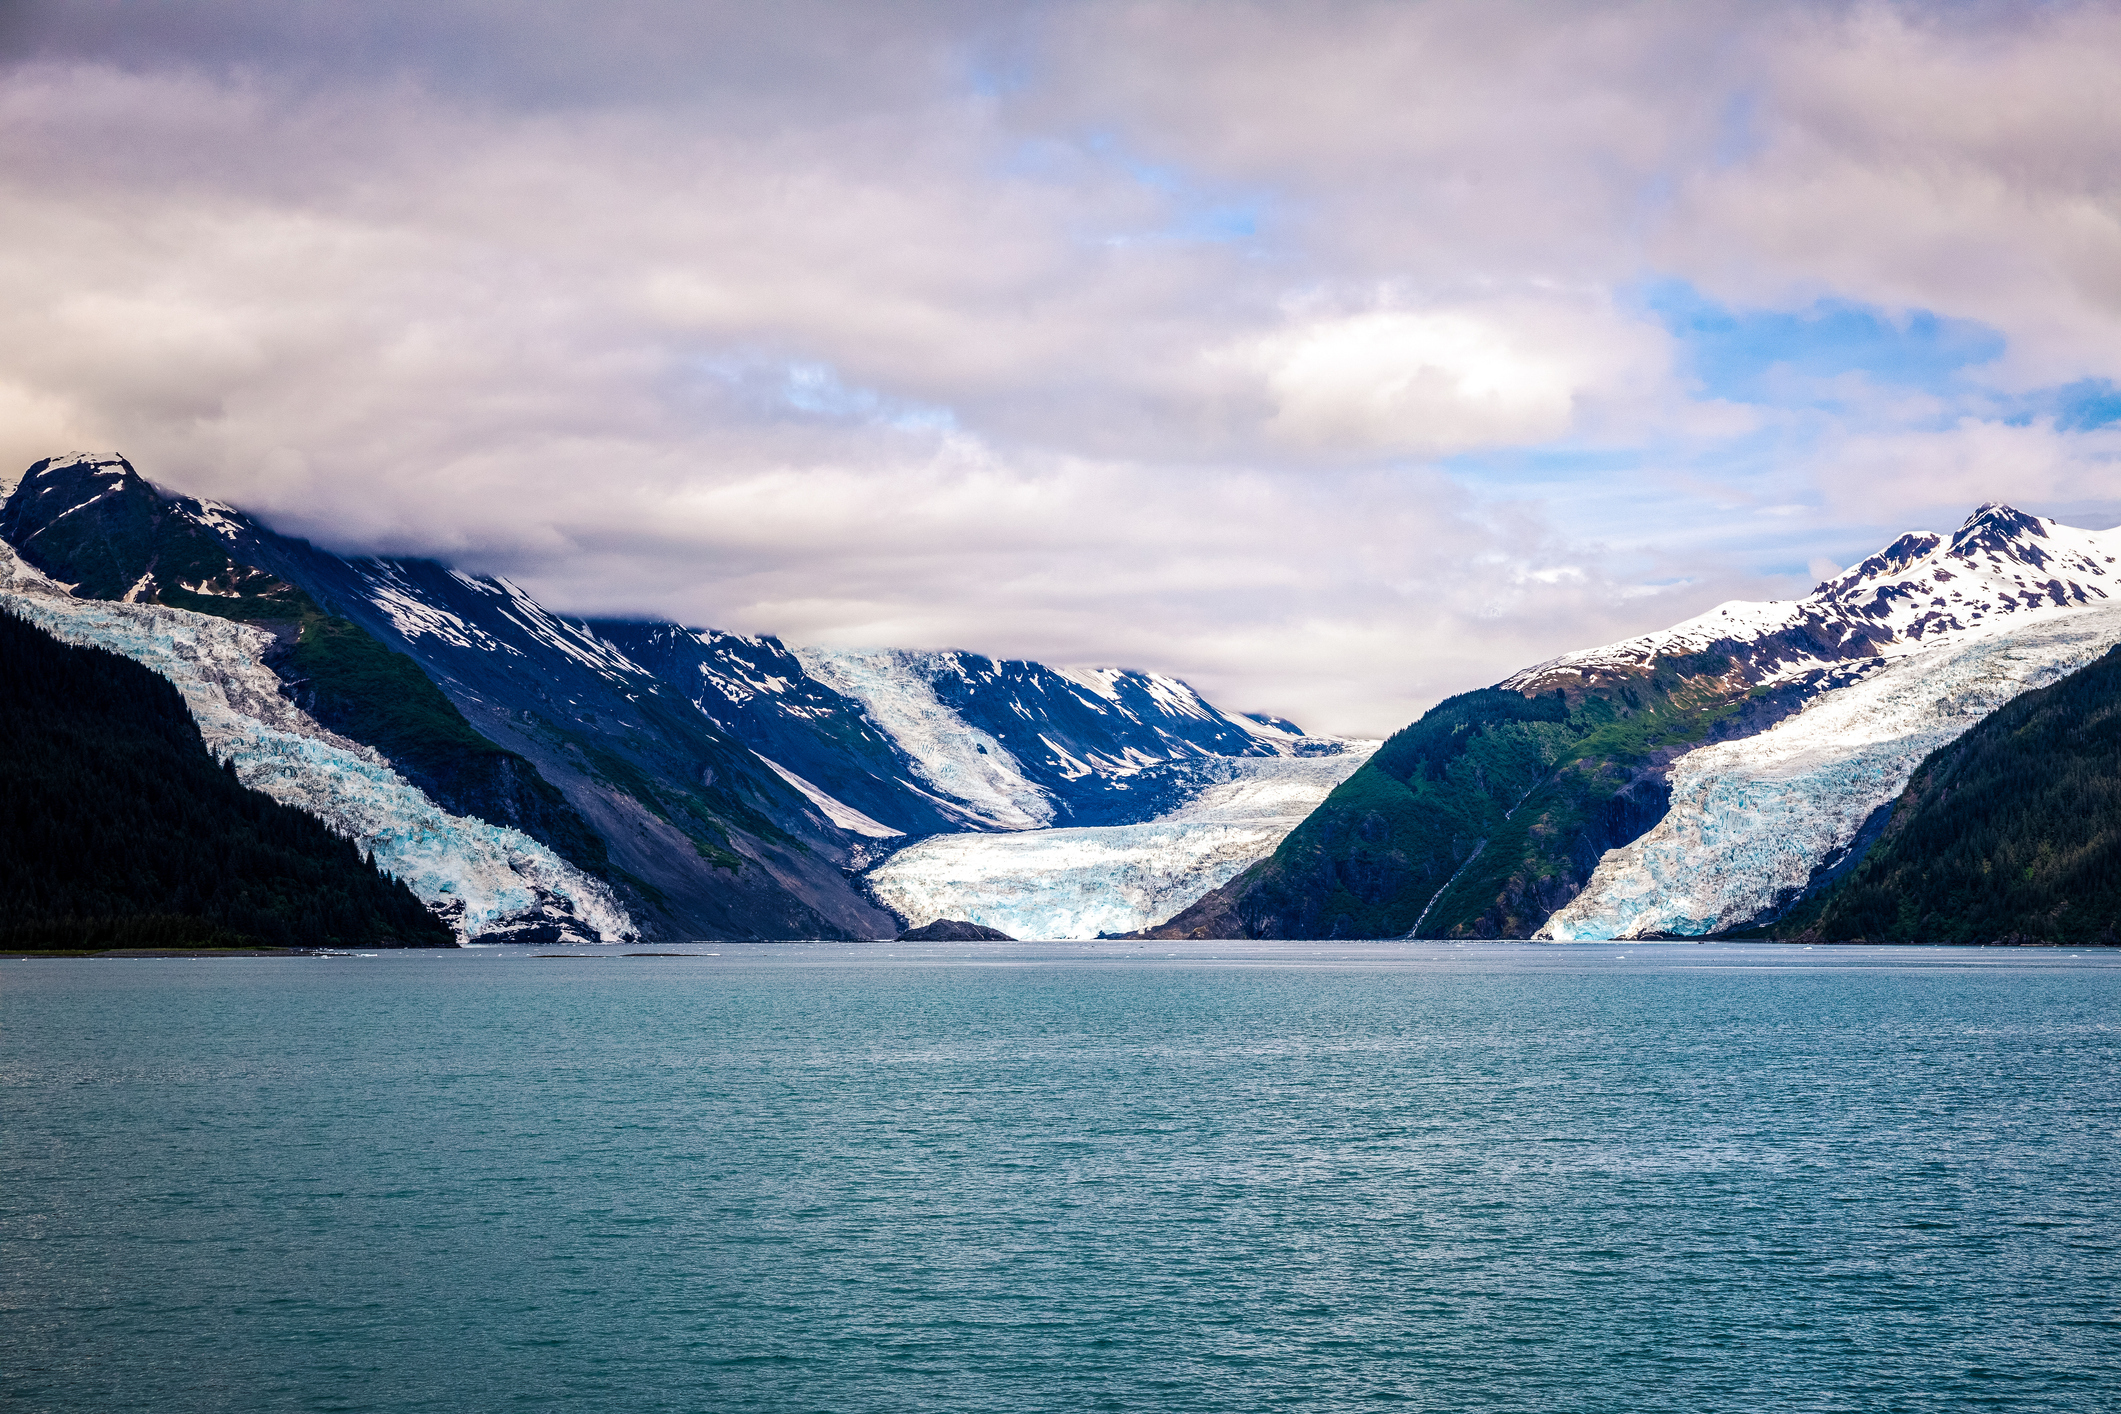 Alaskan mountain slope has become unstable and may collapse producing a tsunami hundreds of feet high, scientists warn